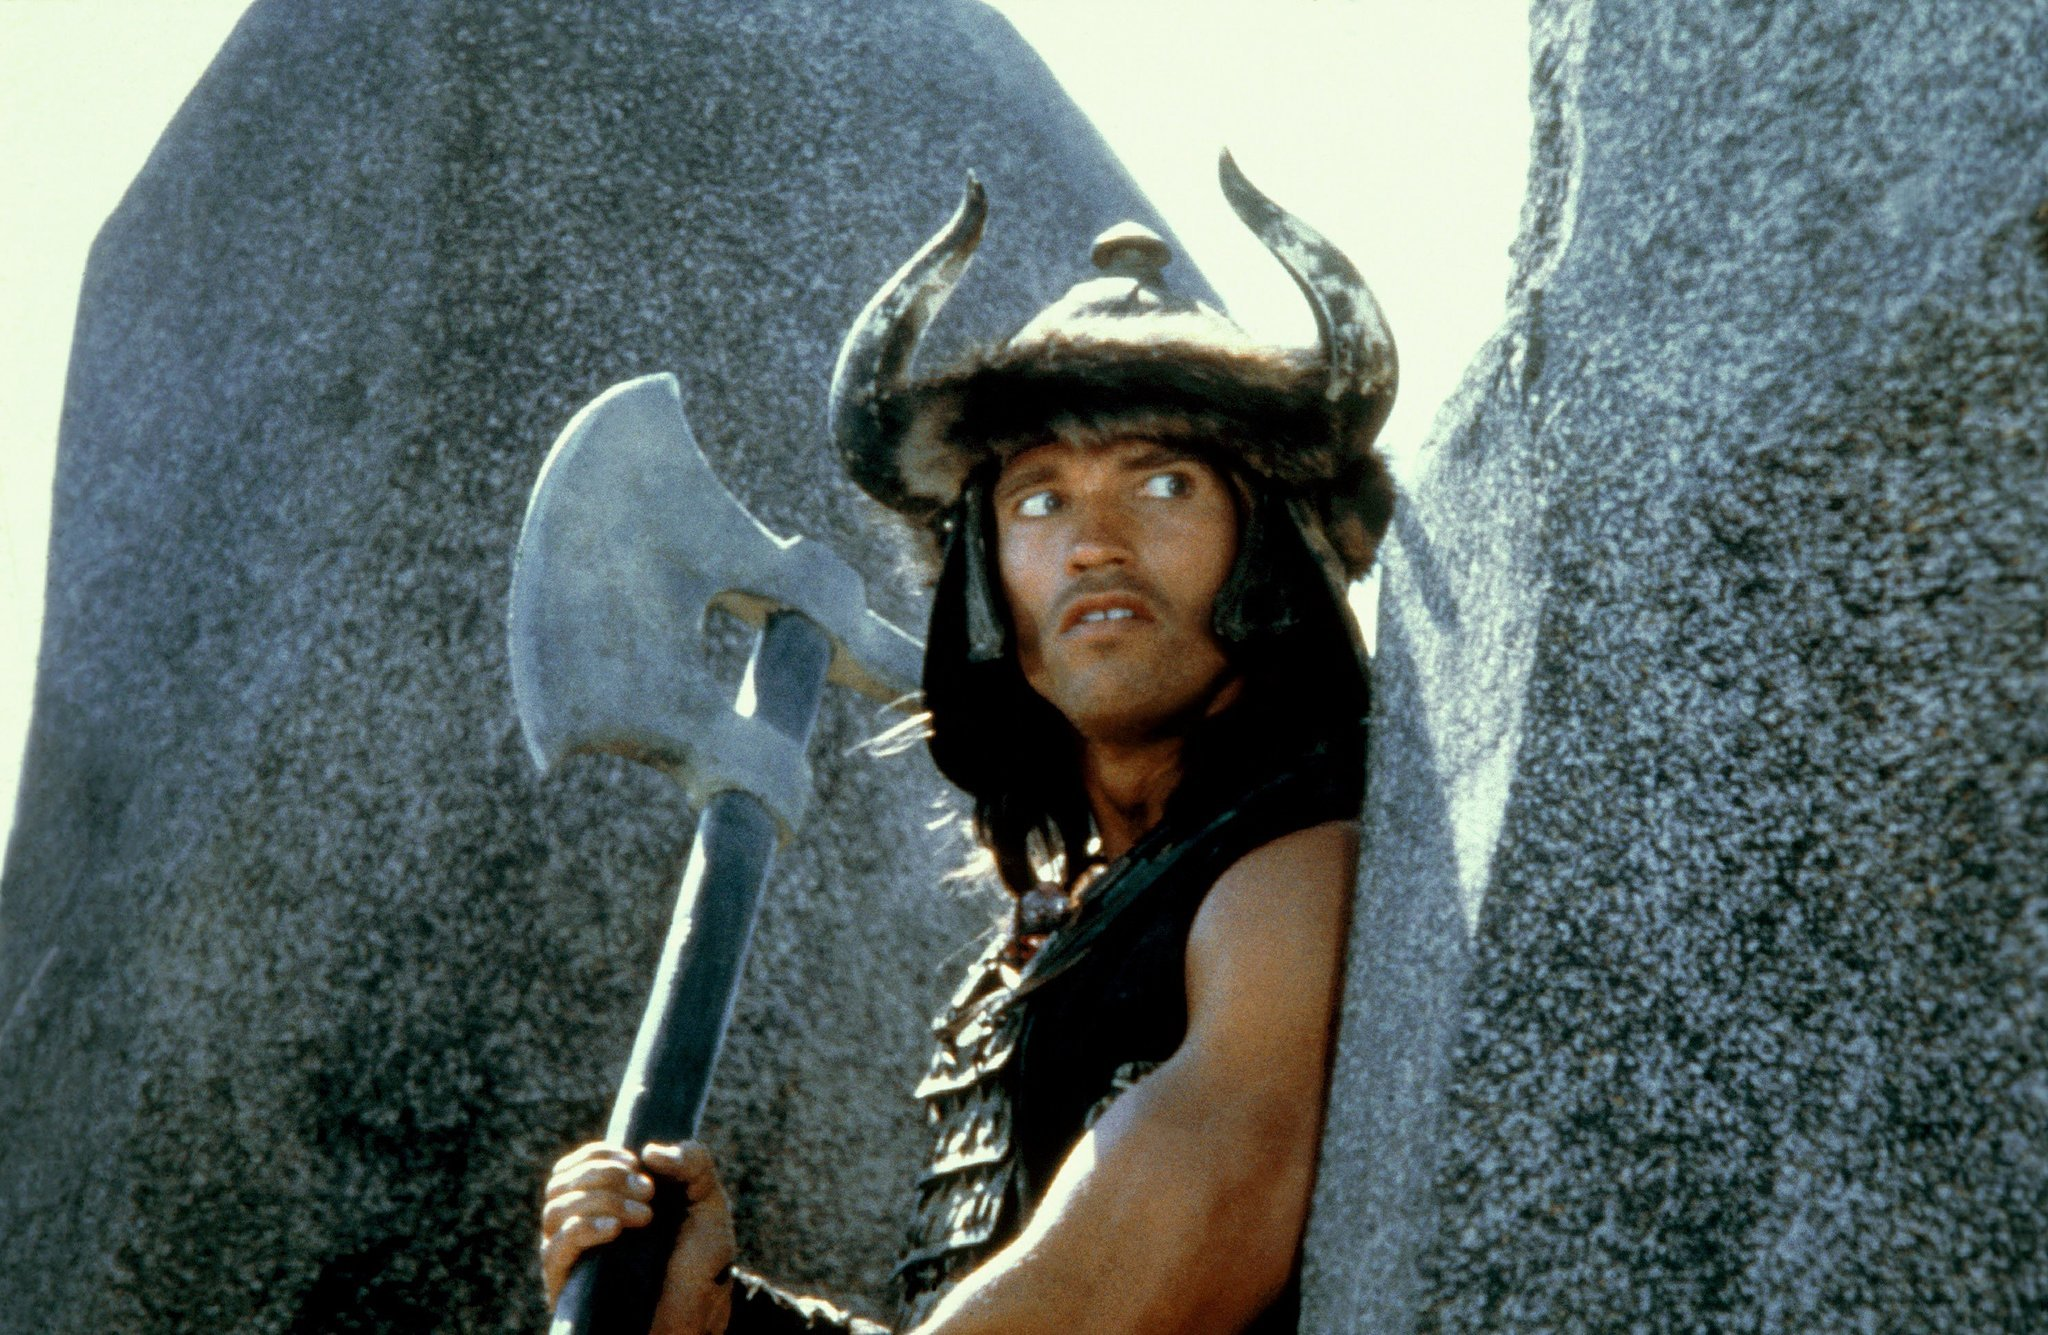 Crush Your Enemies With These 10 Facts About Conan The Barbarian